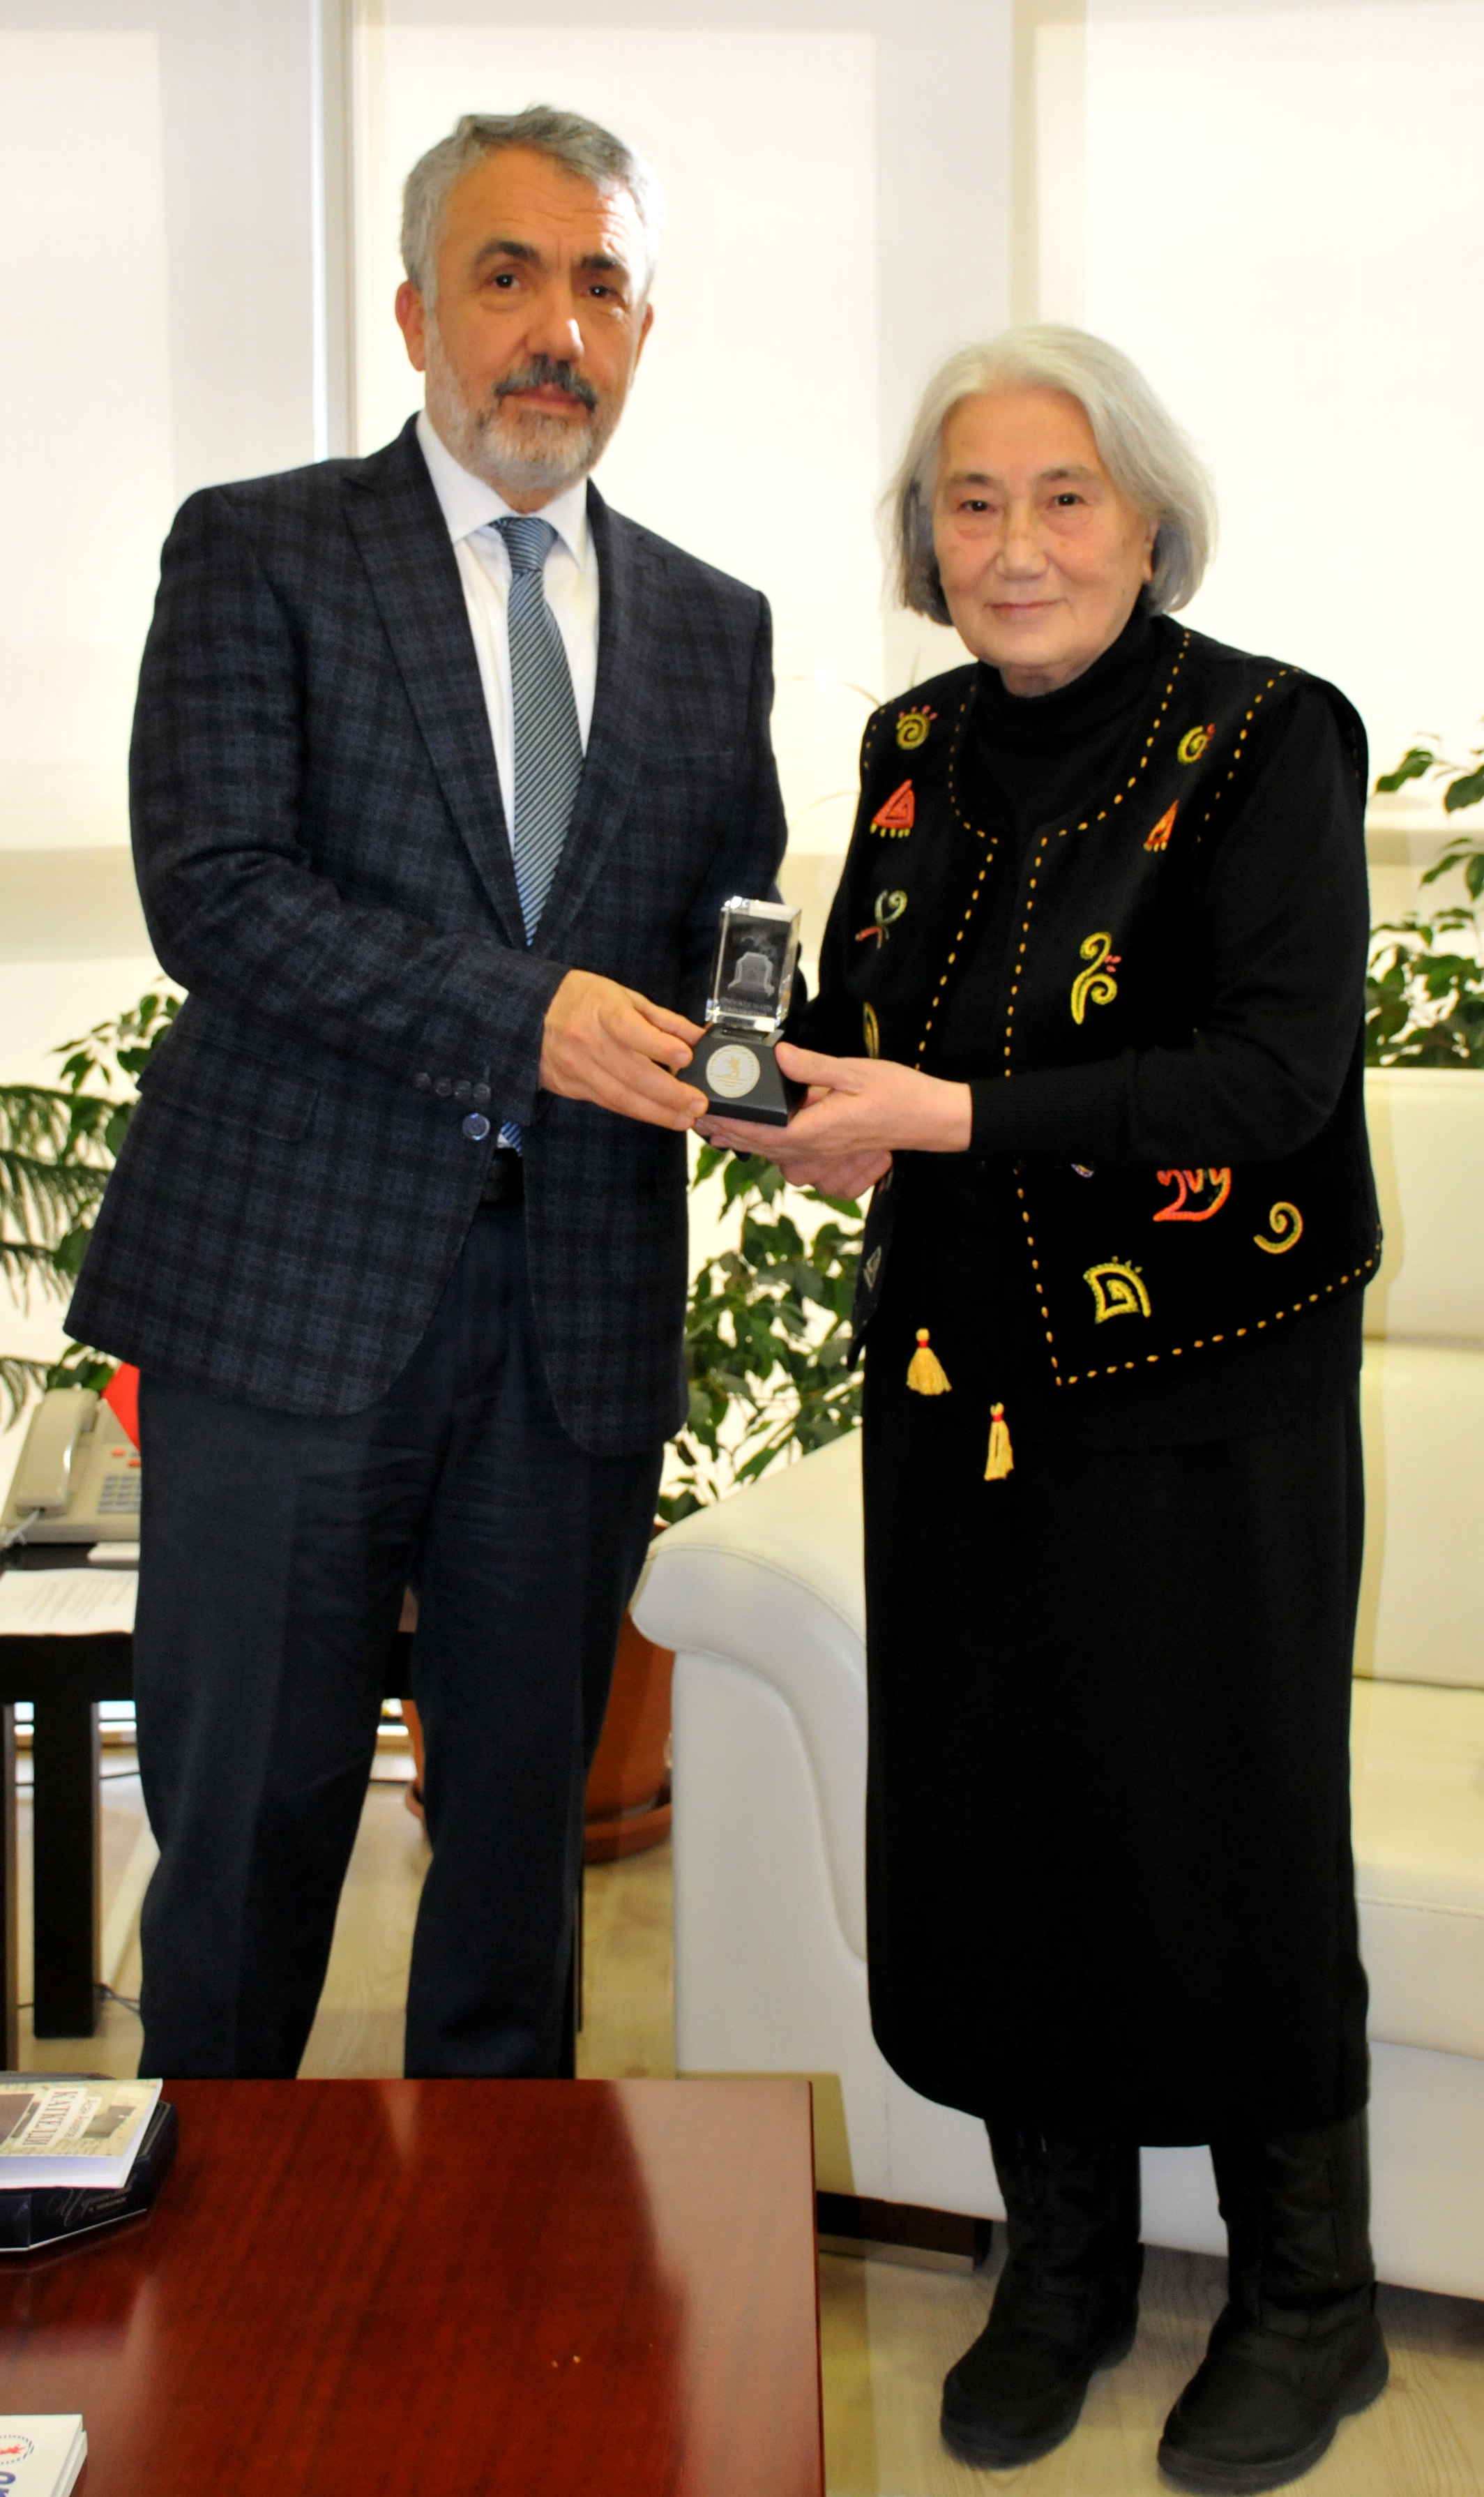 http://www.omu.edu.tr/sites/default/files/files/roza_aitmatov_visits_rector_bilgic/dsc_0163.jpg